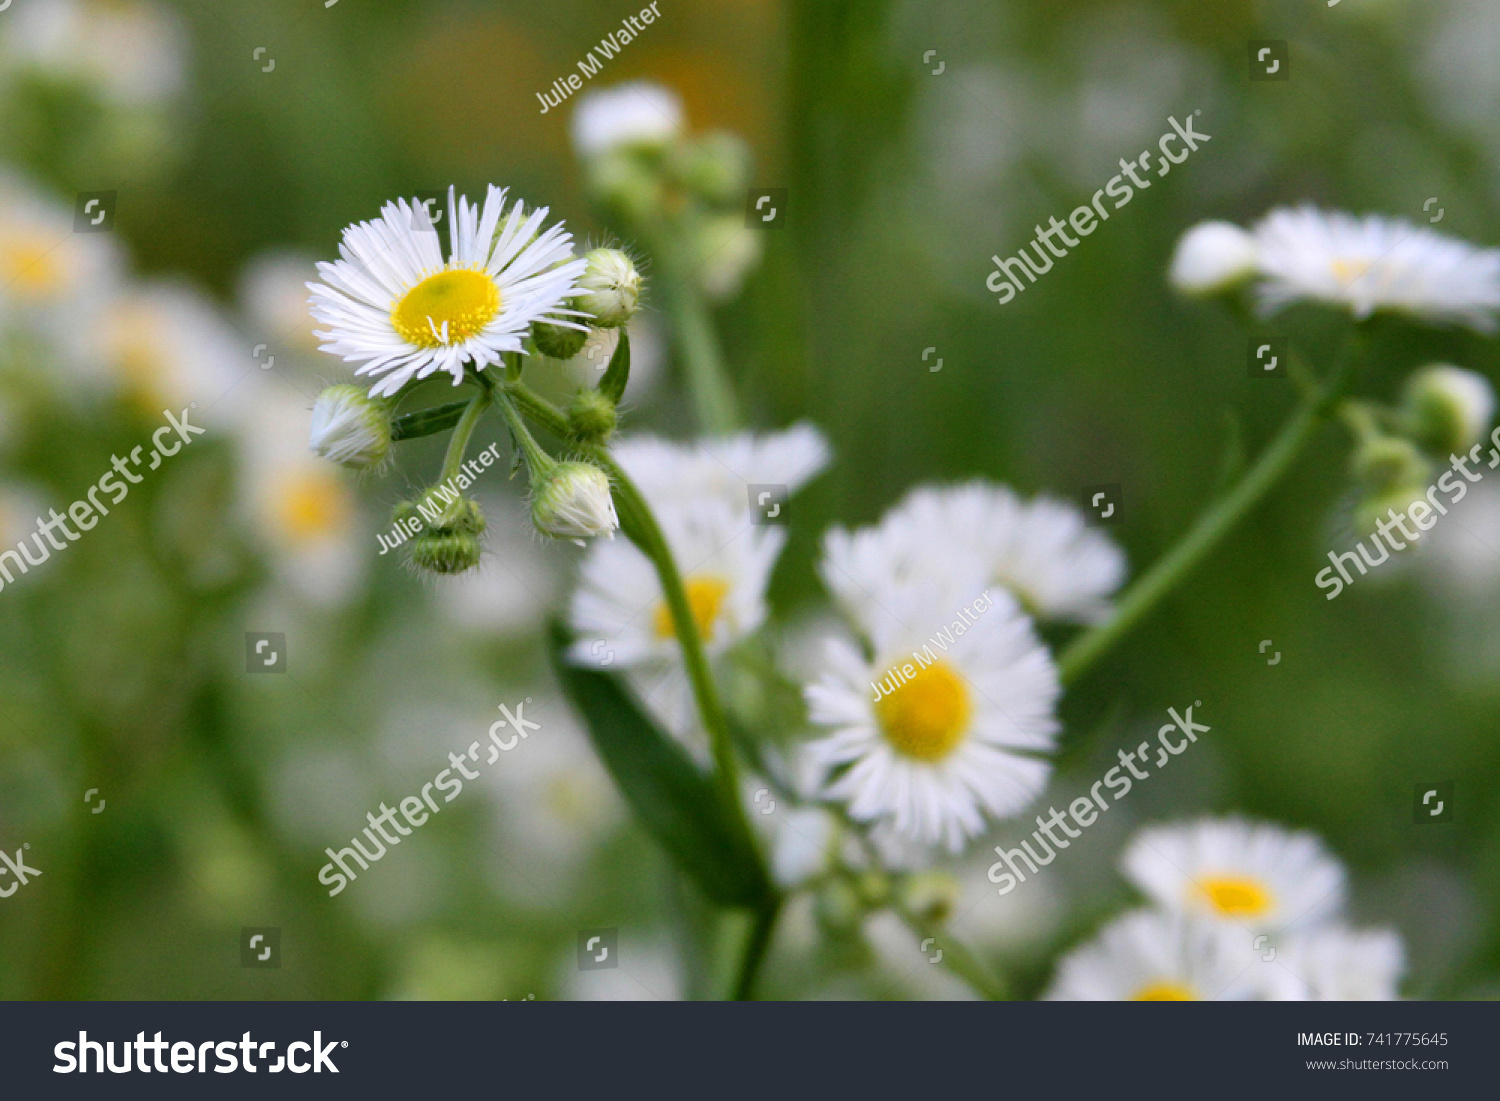 Eastern daisy fleabane white top herbaceous stock photo royalty eastern daisy fleabane white top is a herbaceous plant meaning exorcism protection and izmirmasajfo